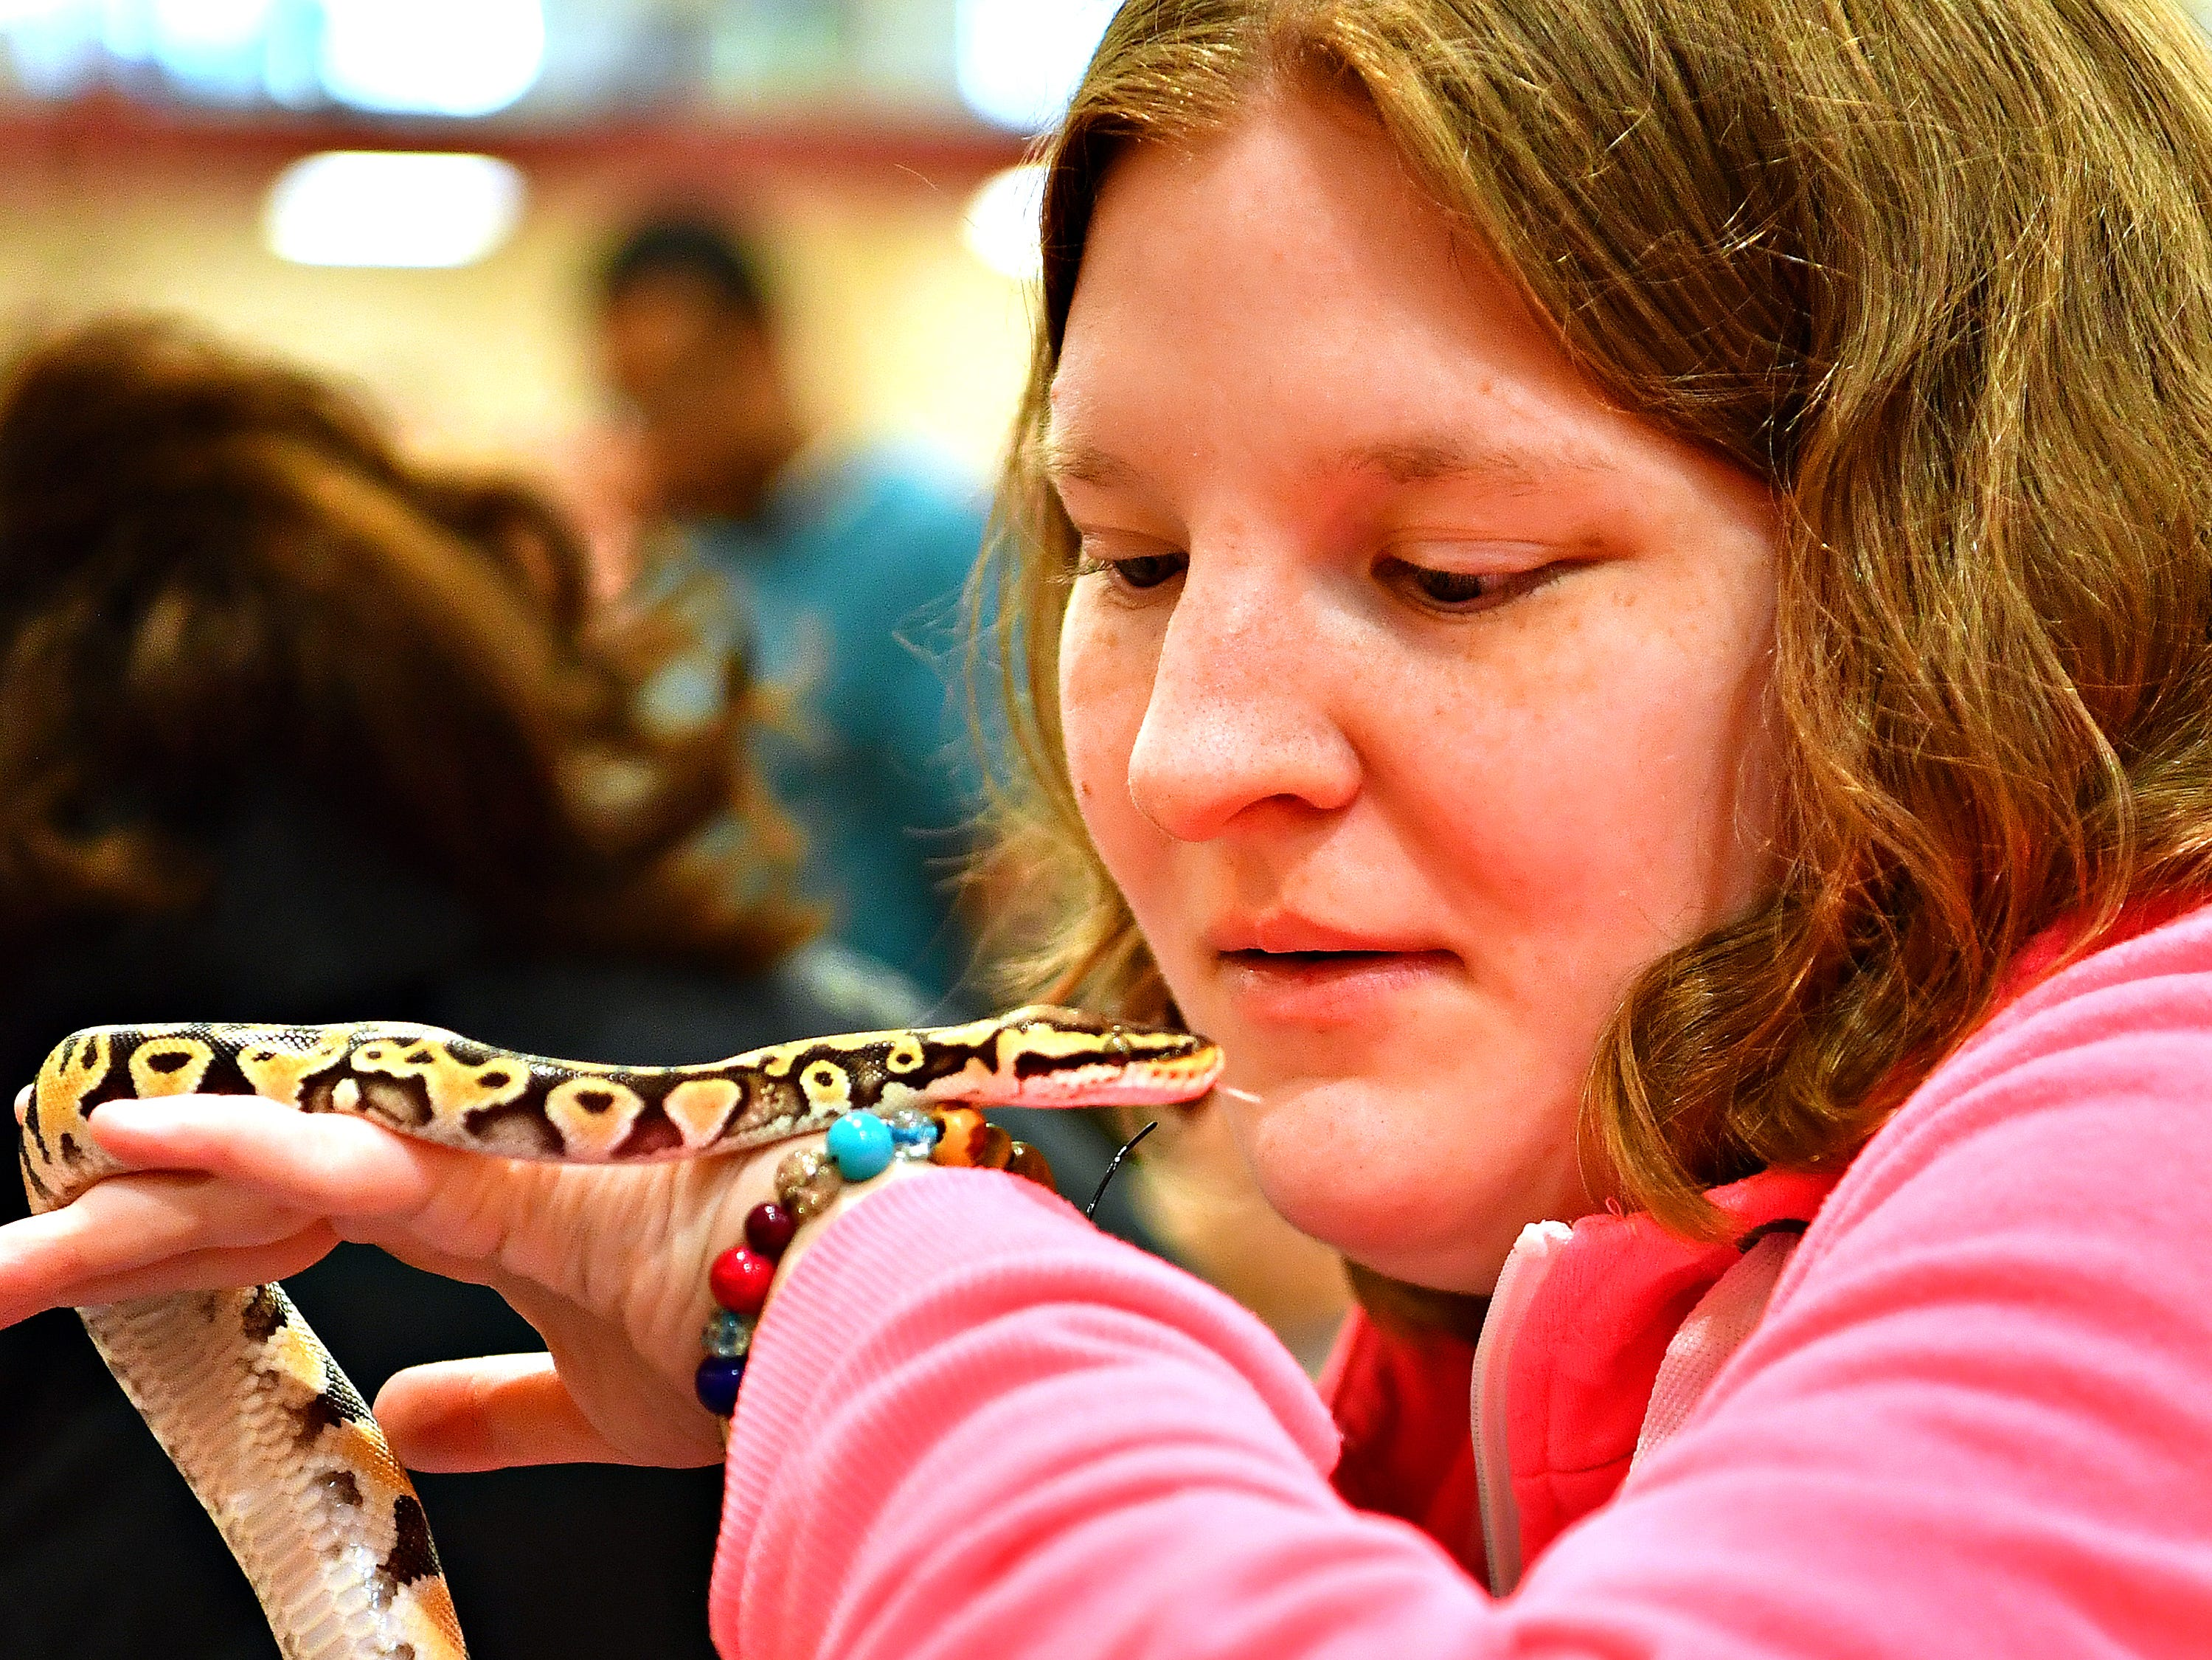 Kelley Bowe, 27, of Glen Rock, holds a ball python for the first time. The snake was provided by Critter Connections, based in York Township, during the 2019 Walk for Autism & Autism Expo at Central York High School in Springettsbury Township, Saturday, April 6, 2019. Dawn J. Sagert photo